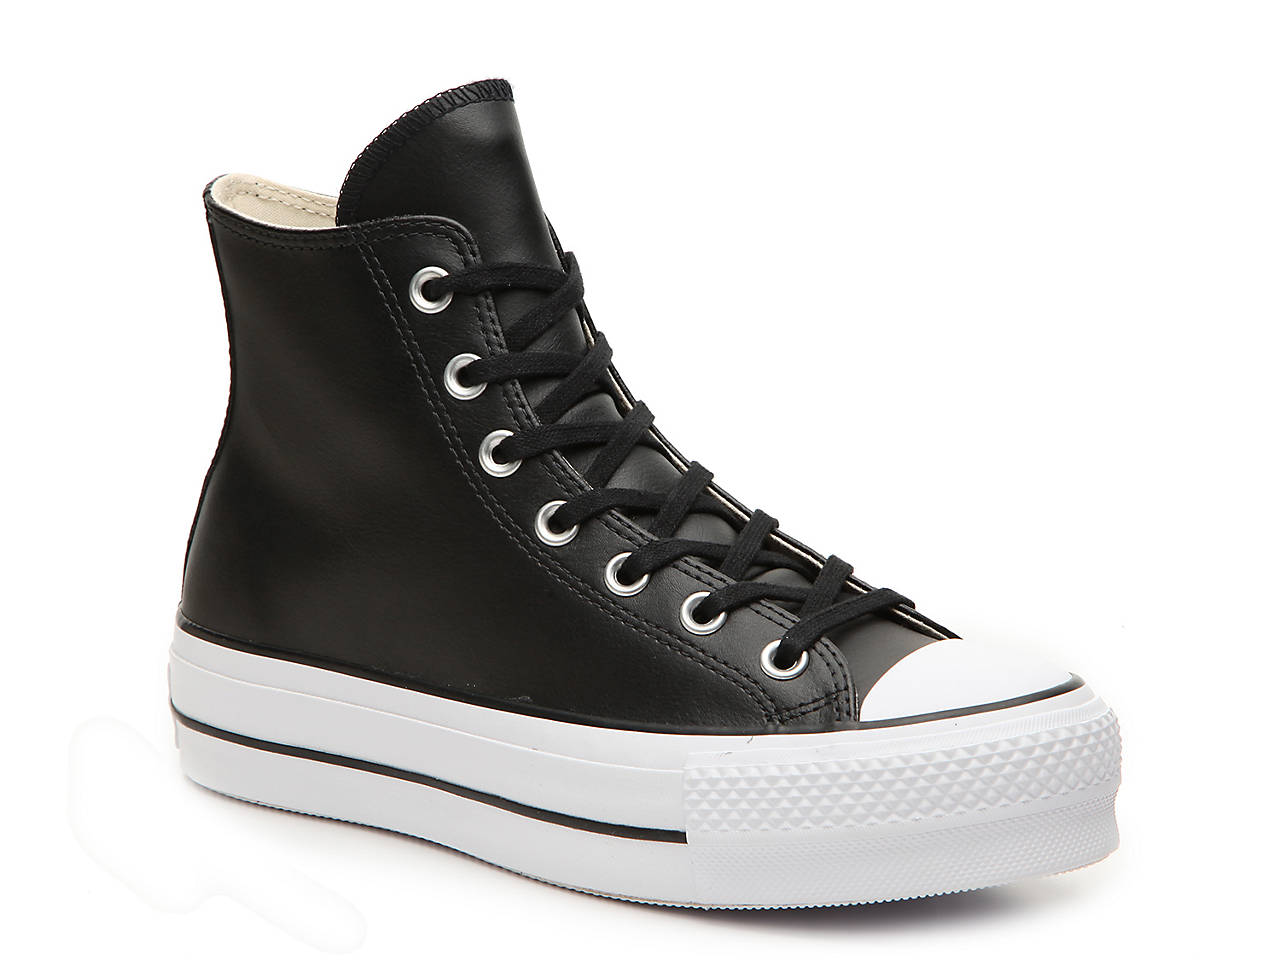 298f9c38885 Converse Chuck Taylor All Star High-Top Platform Sneaker - Women s ...